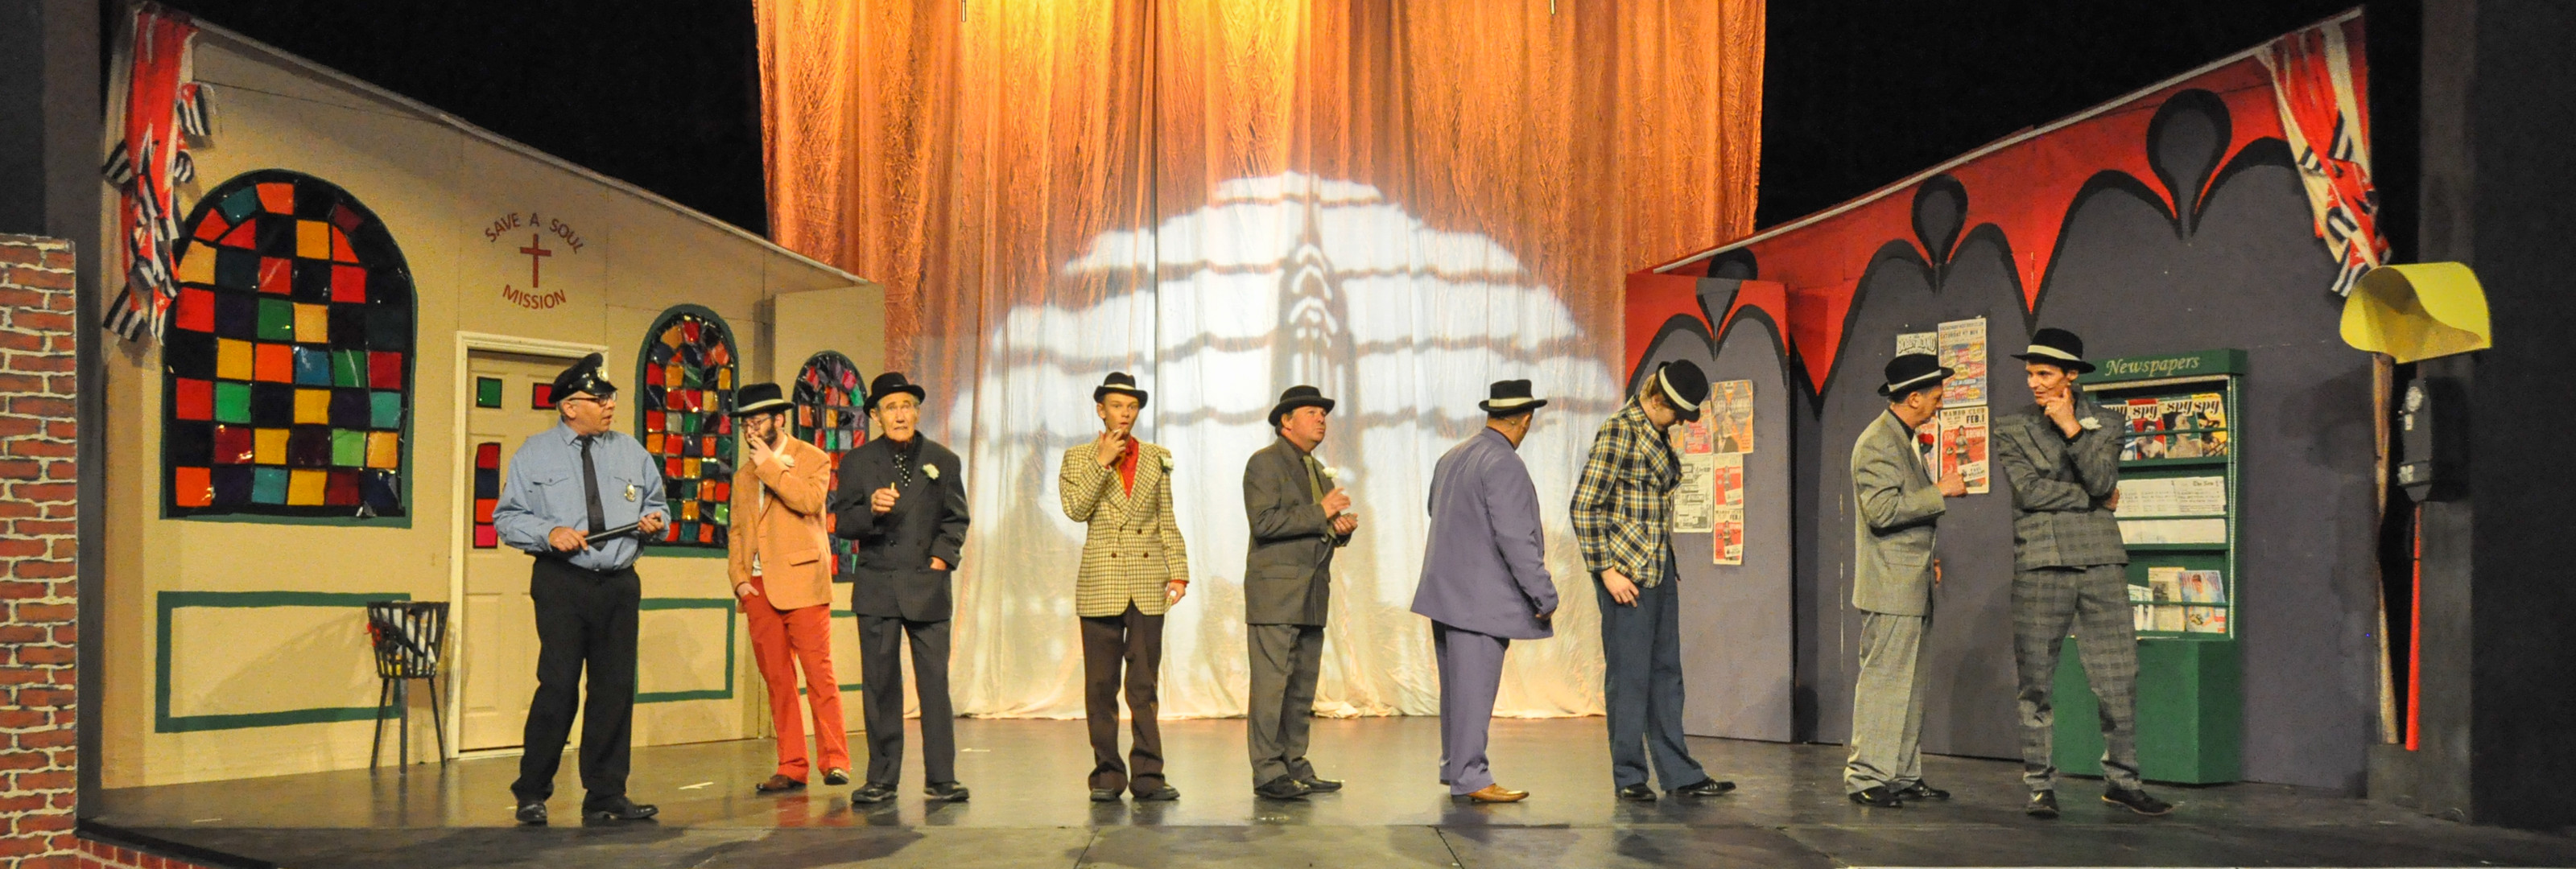 Guys & Dolls - Display 65 (23 of 65).jpg